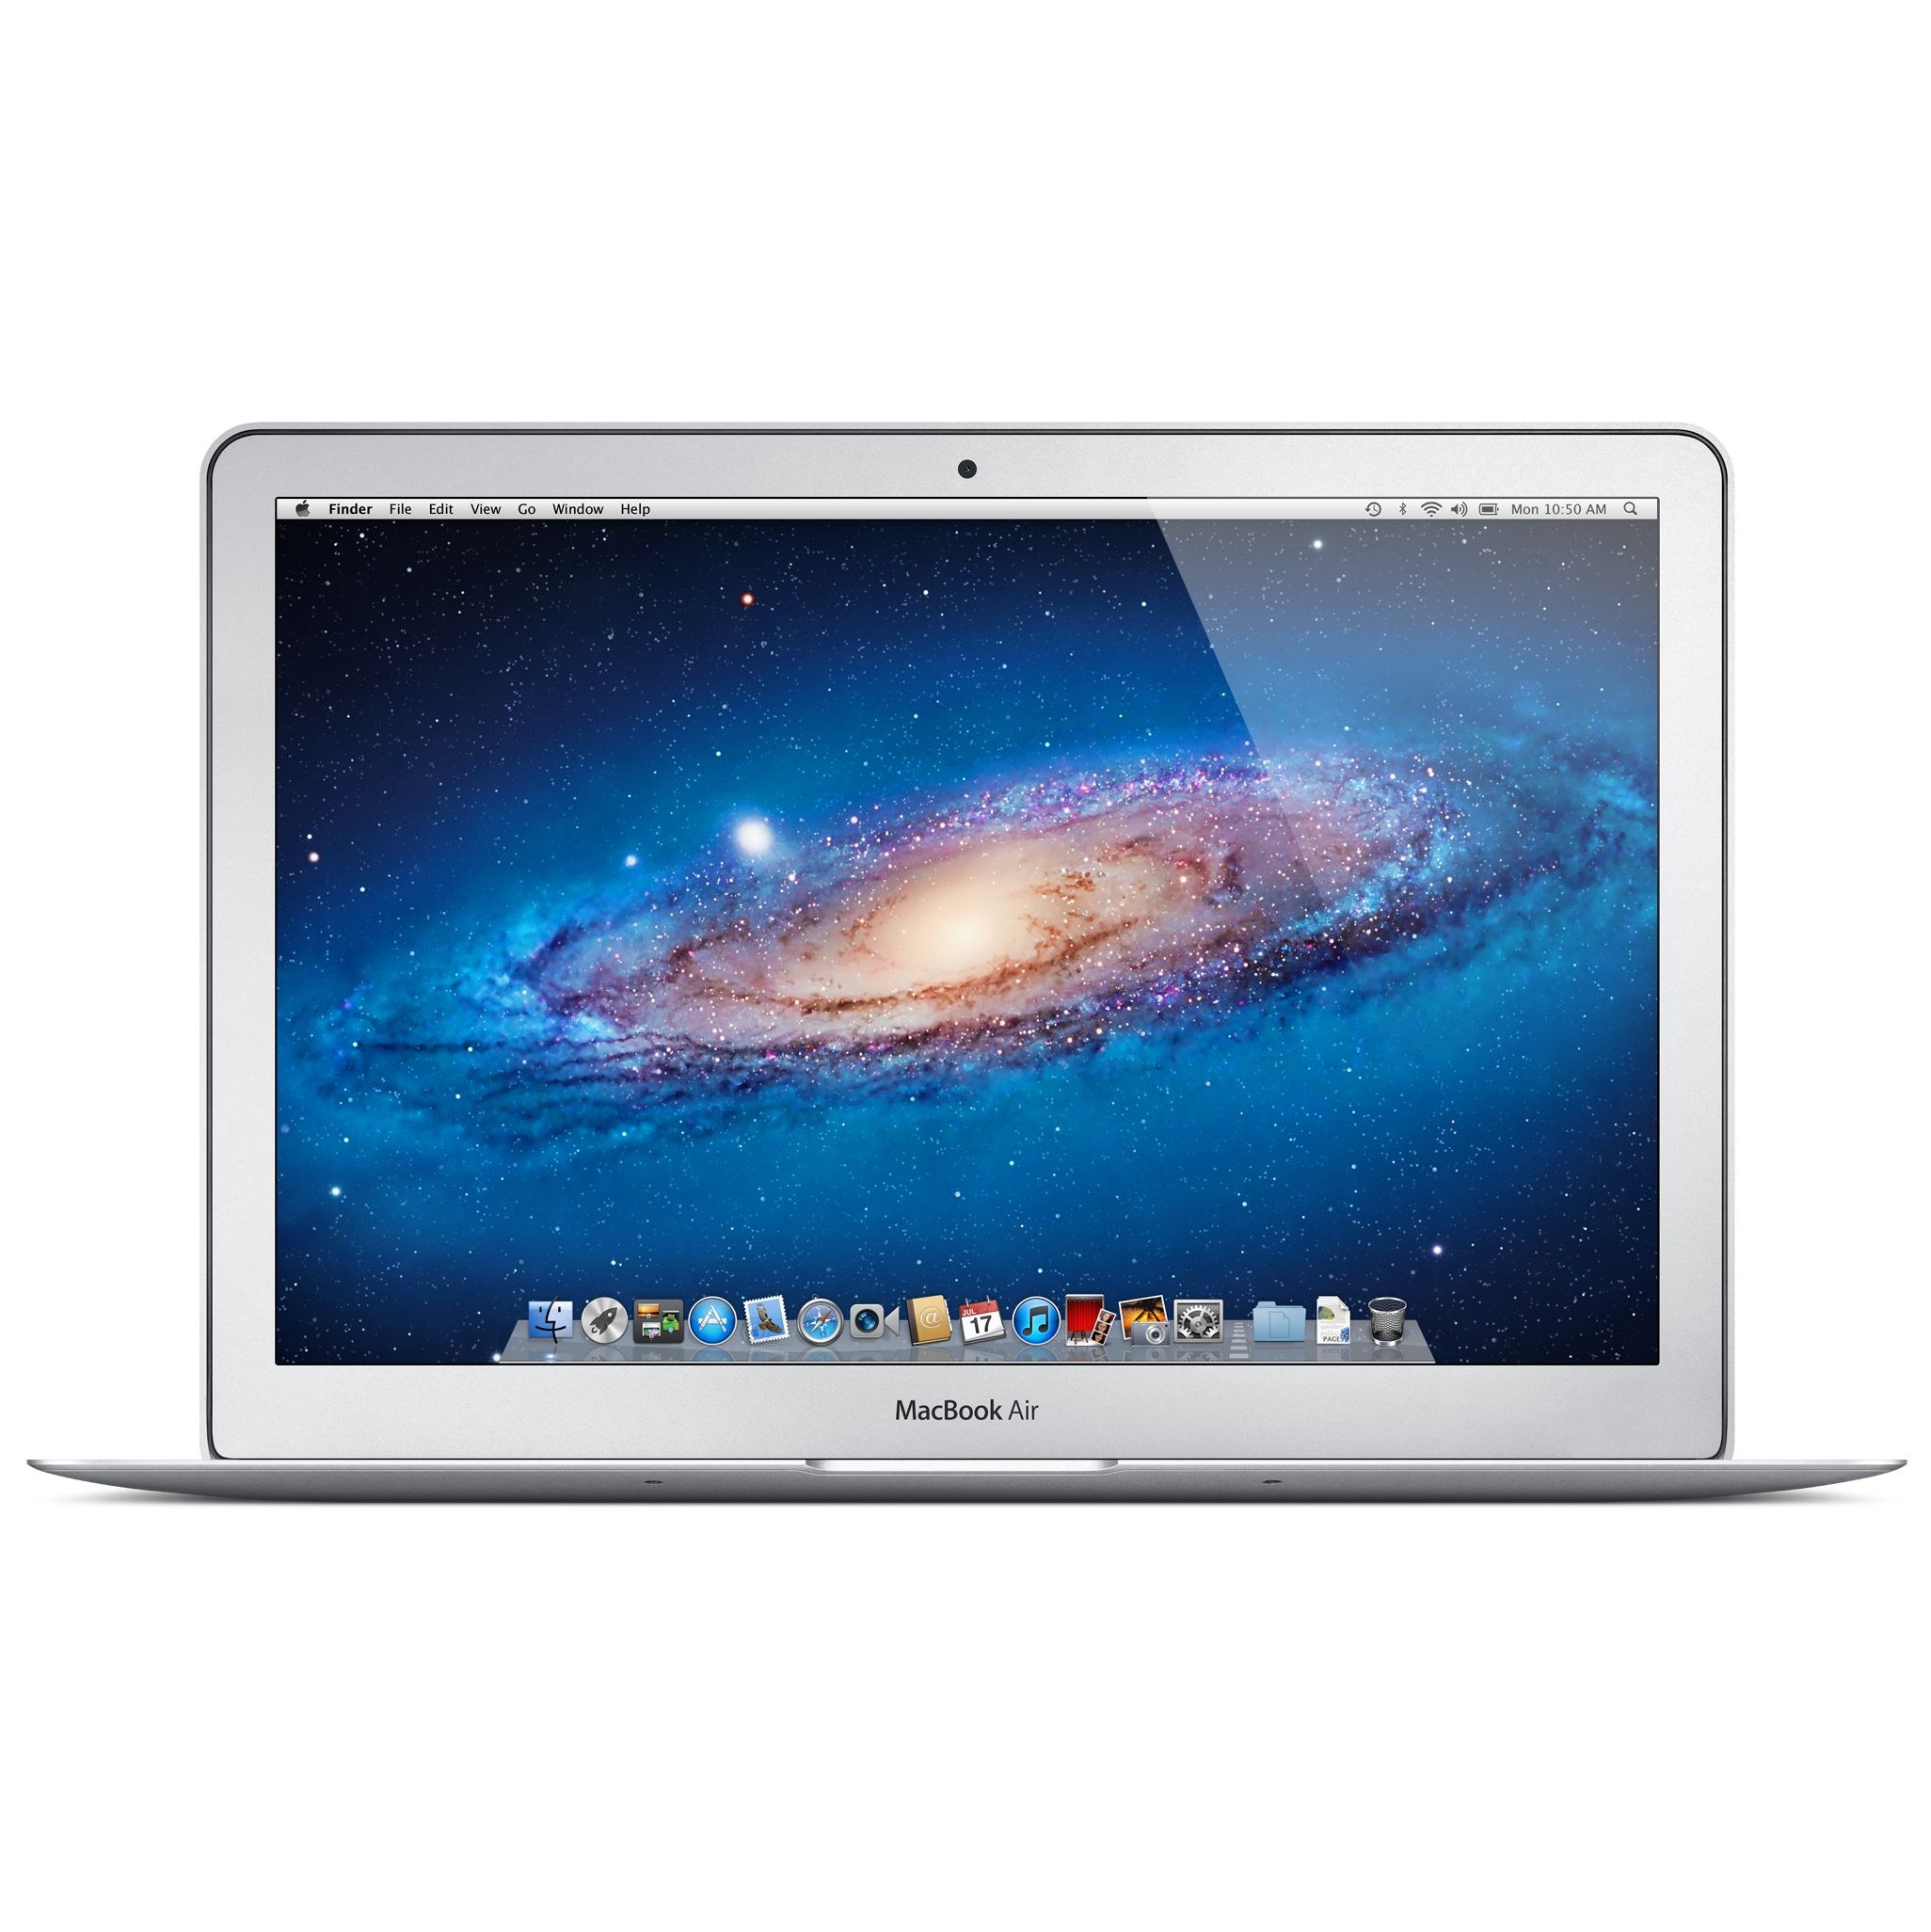 New Apple Macbook Air, Md223b/a, Intel Core I5, 1.7ghz, 64gb Ssd, 4gb Ram With 11.6 Inch Display